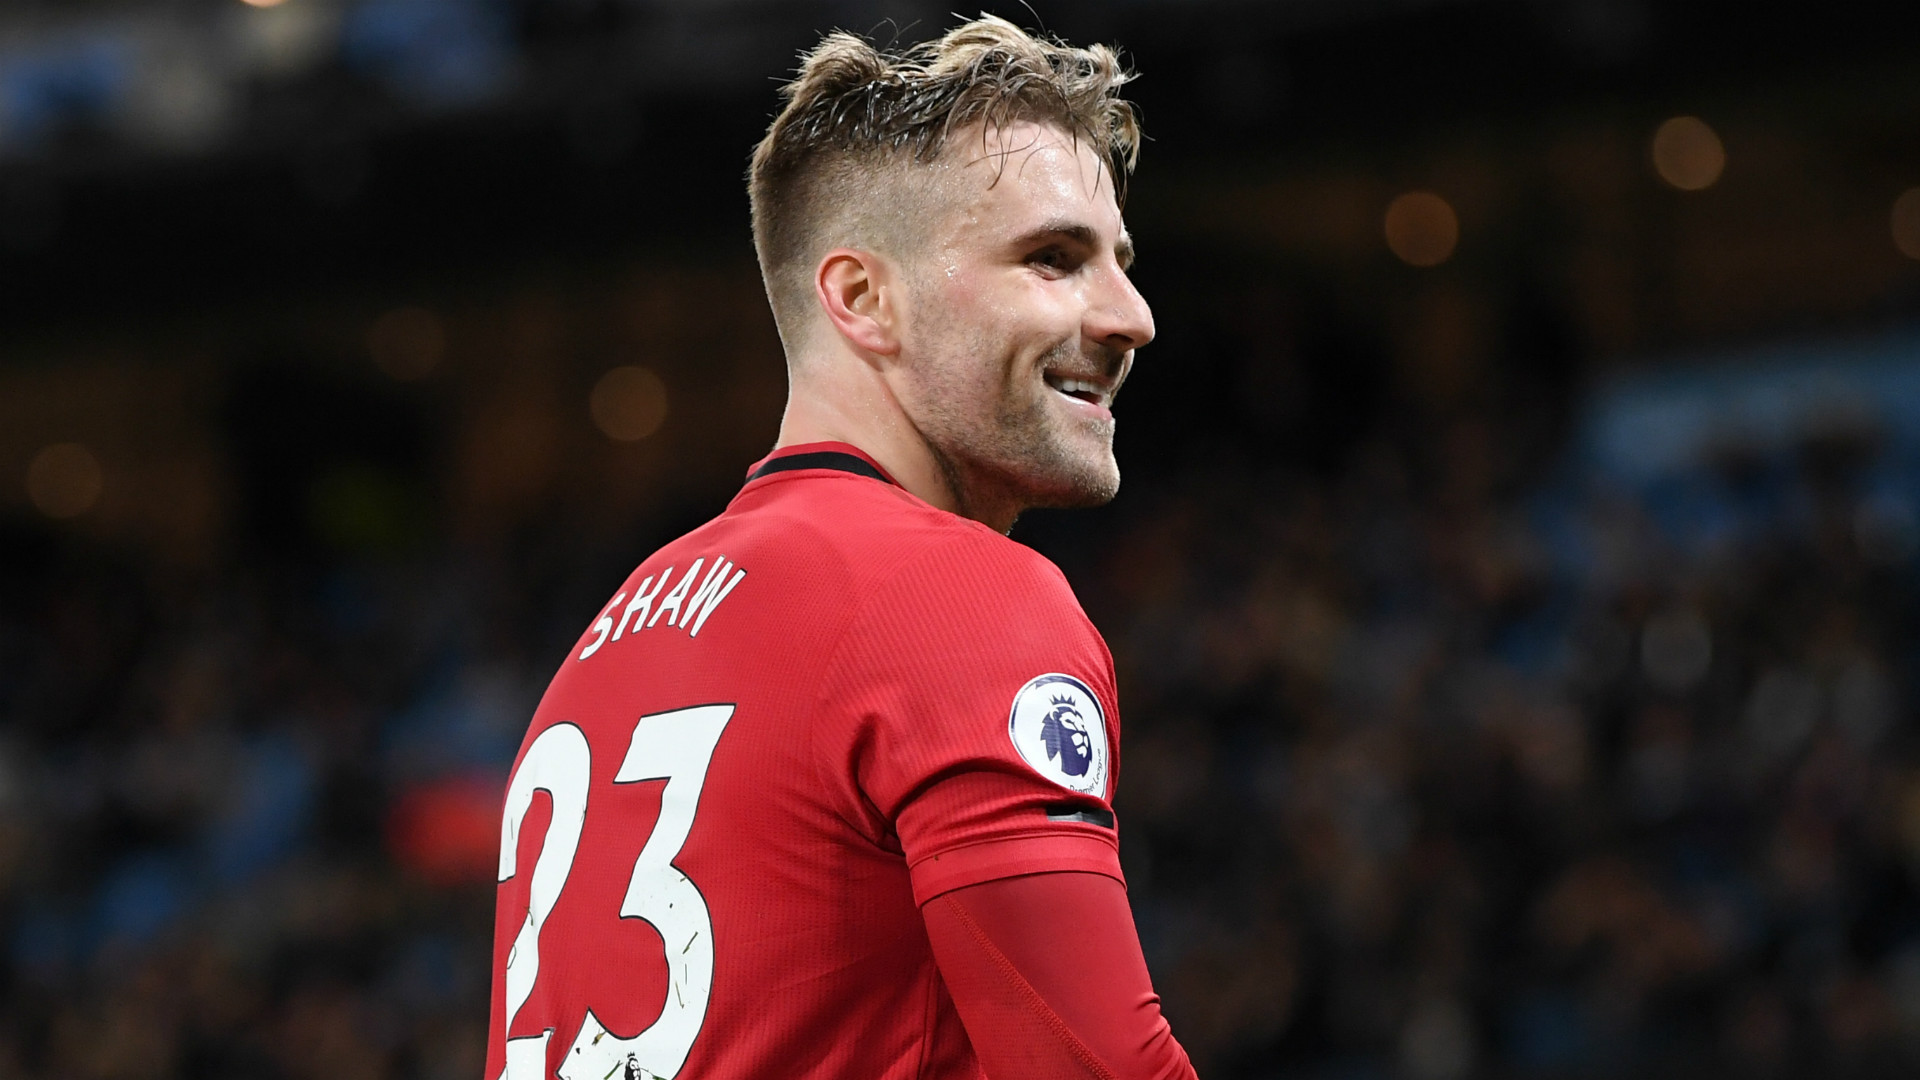 'Shaw can be one of the Premier League's best left-backs' - Solskjaer vouches for Man Utd star after Young sale